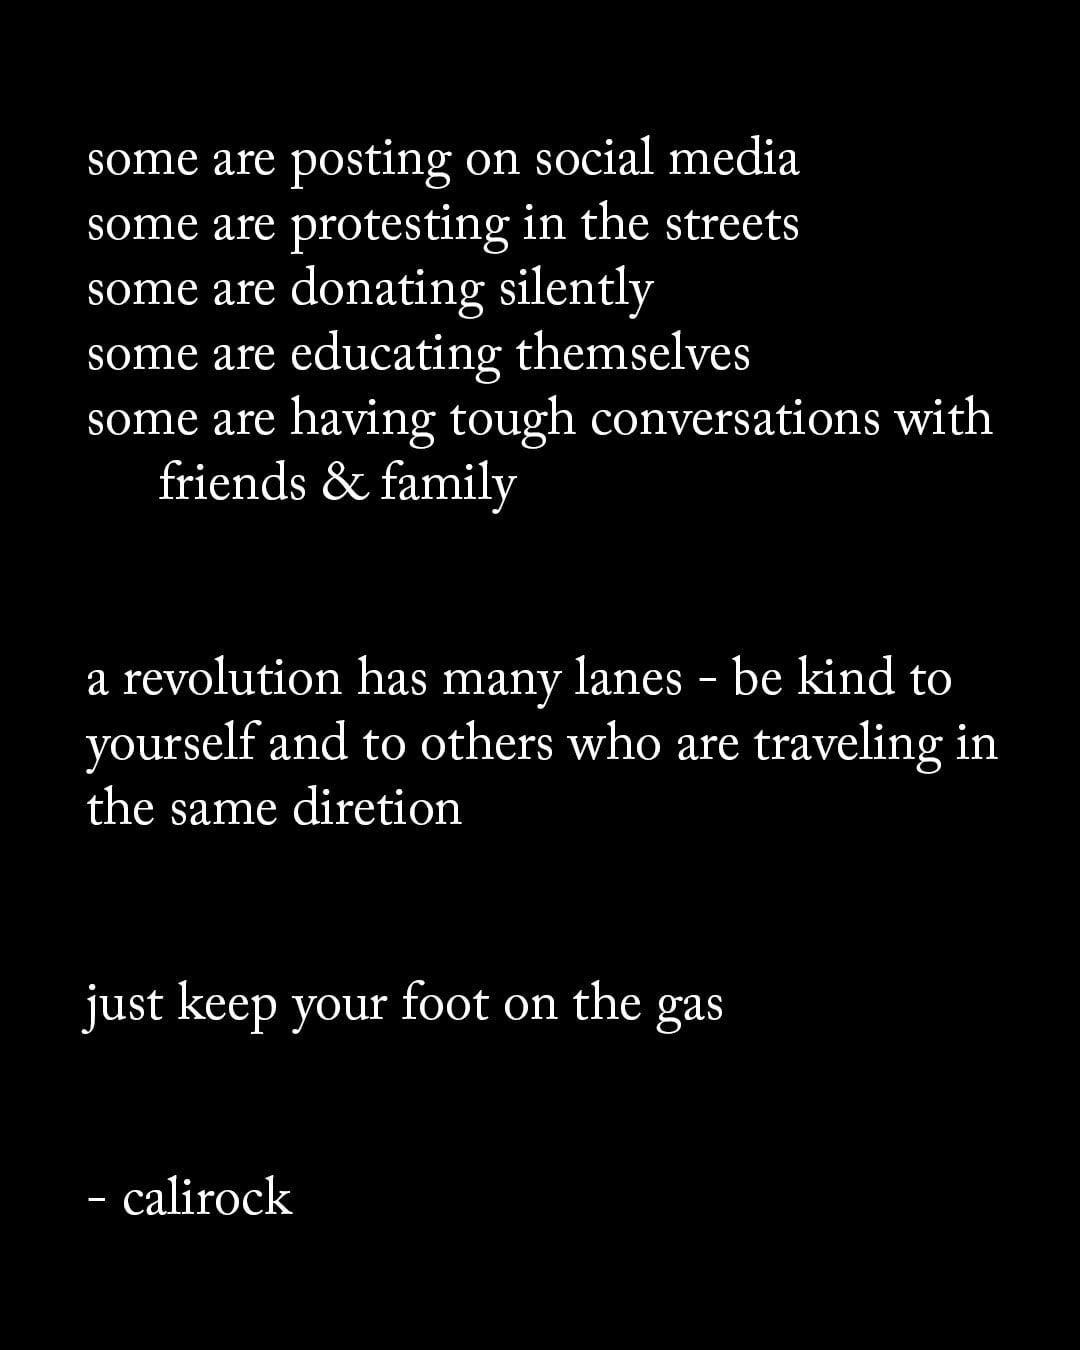 Some are posting on social media. Some are protesting in the streets. Some are donating silently. Some are educating themselves. Some are having tough conversations with friends & family. A revolution has many lanes. Be kind to yourself and to others who are traveling in the same direction. Just keep your foot on the gas. - via octaviaspencer via calirock.